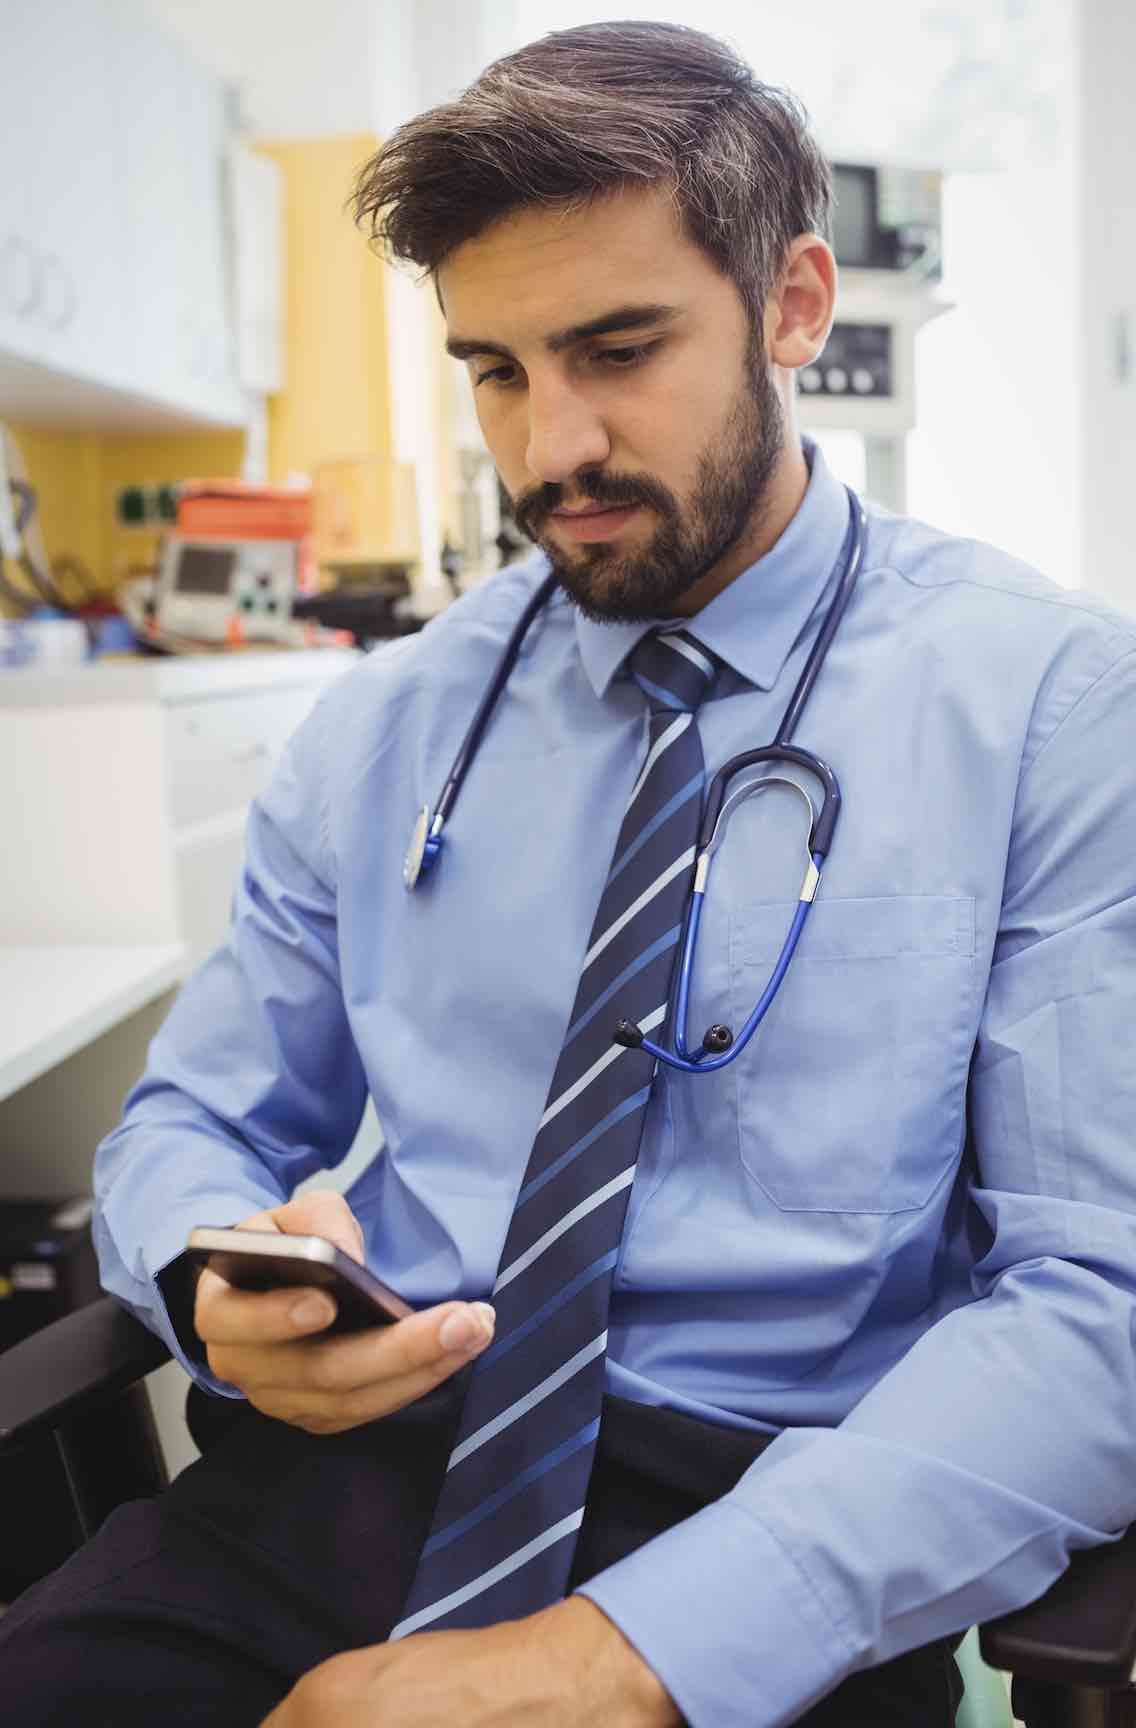 Can I Text or Email Patient Information?